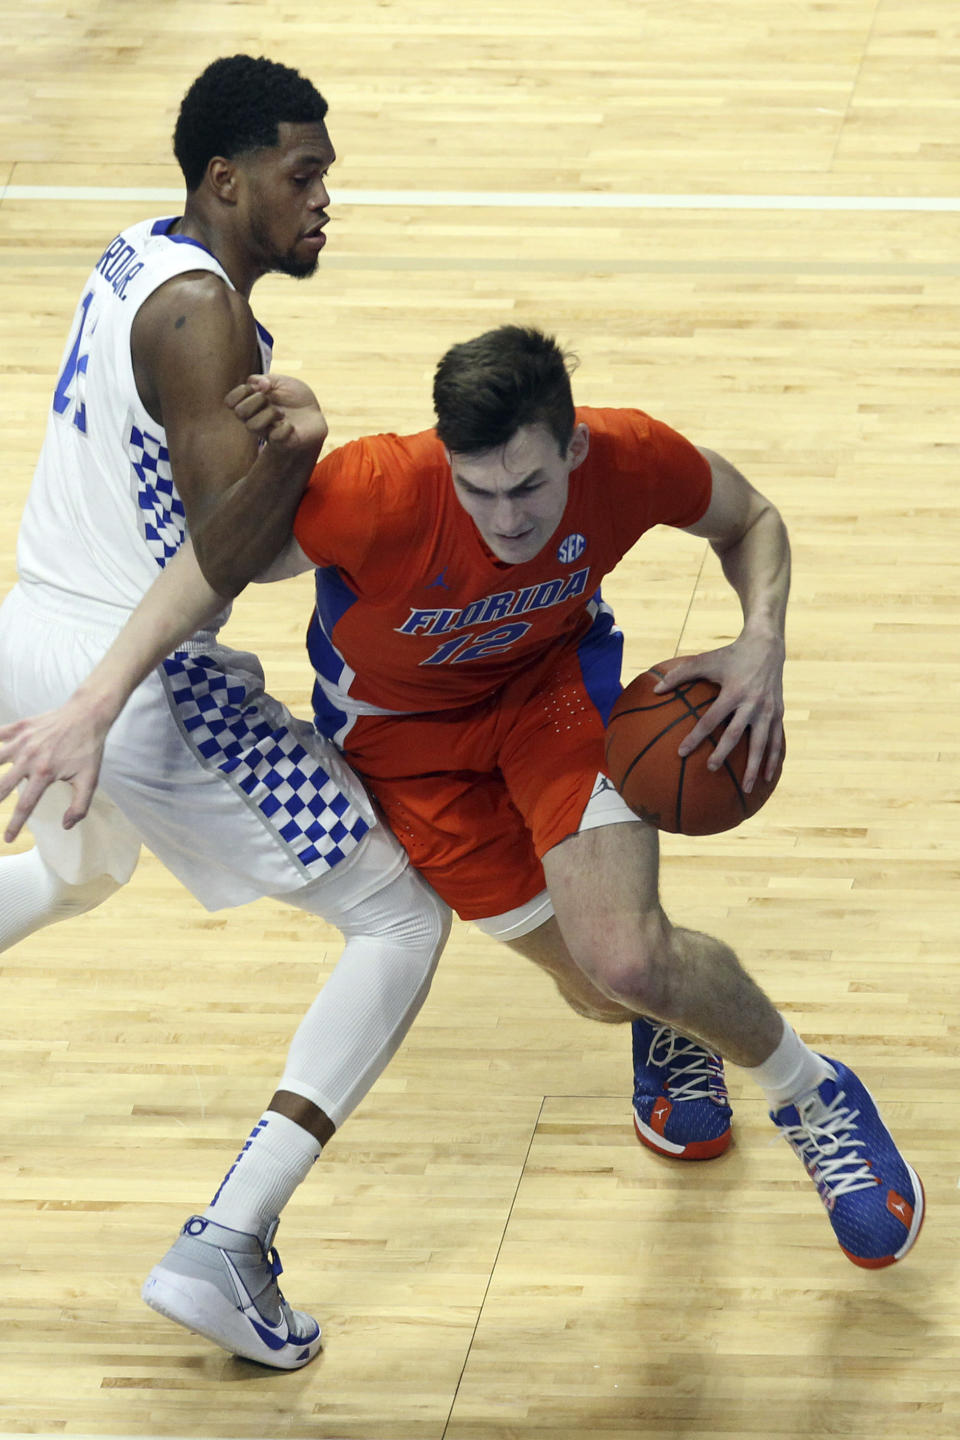 Florida's Colin Castleton, right, drives while defended by Kentucky's Keion Brooks Jr. during the first half of an NCAA college basketball game in Lexington, Ky., Saturday, Feb. 27, 2021. (AP Photo/James Crisp)